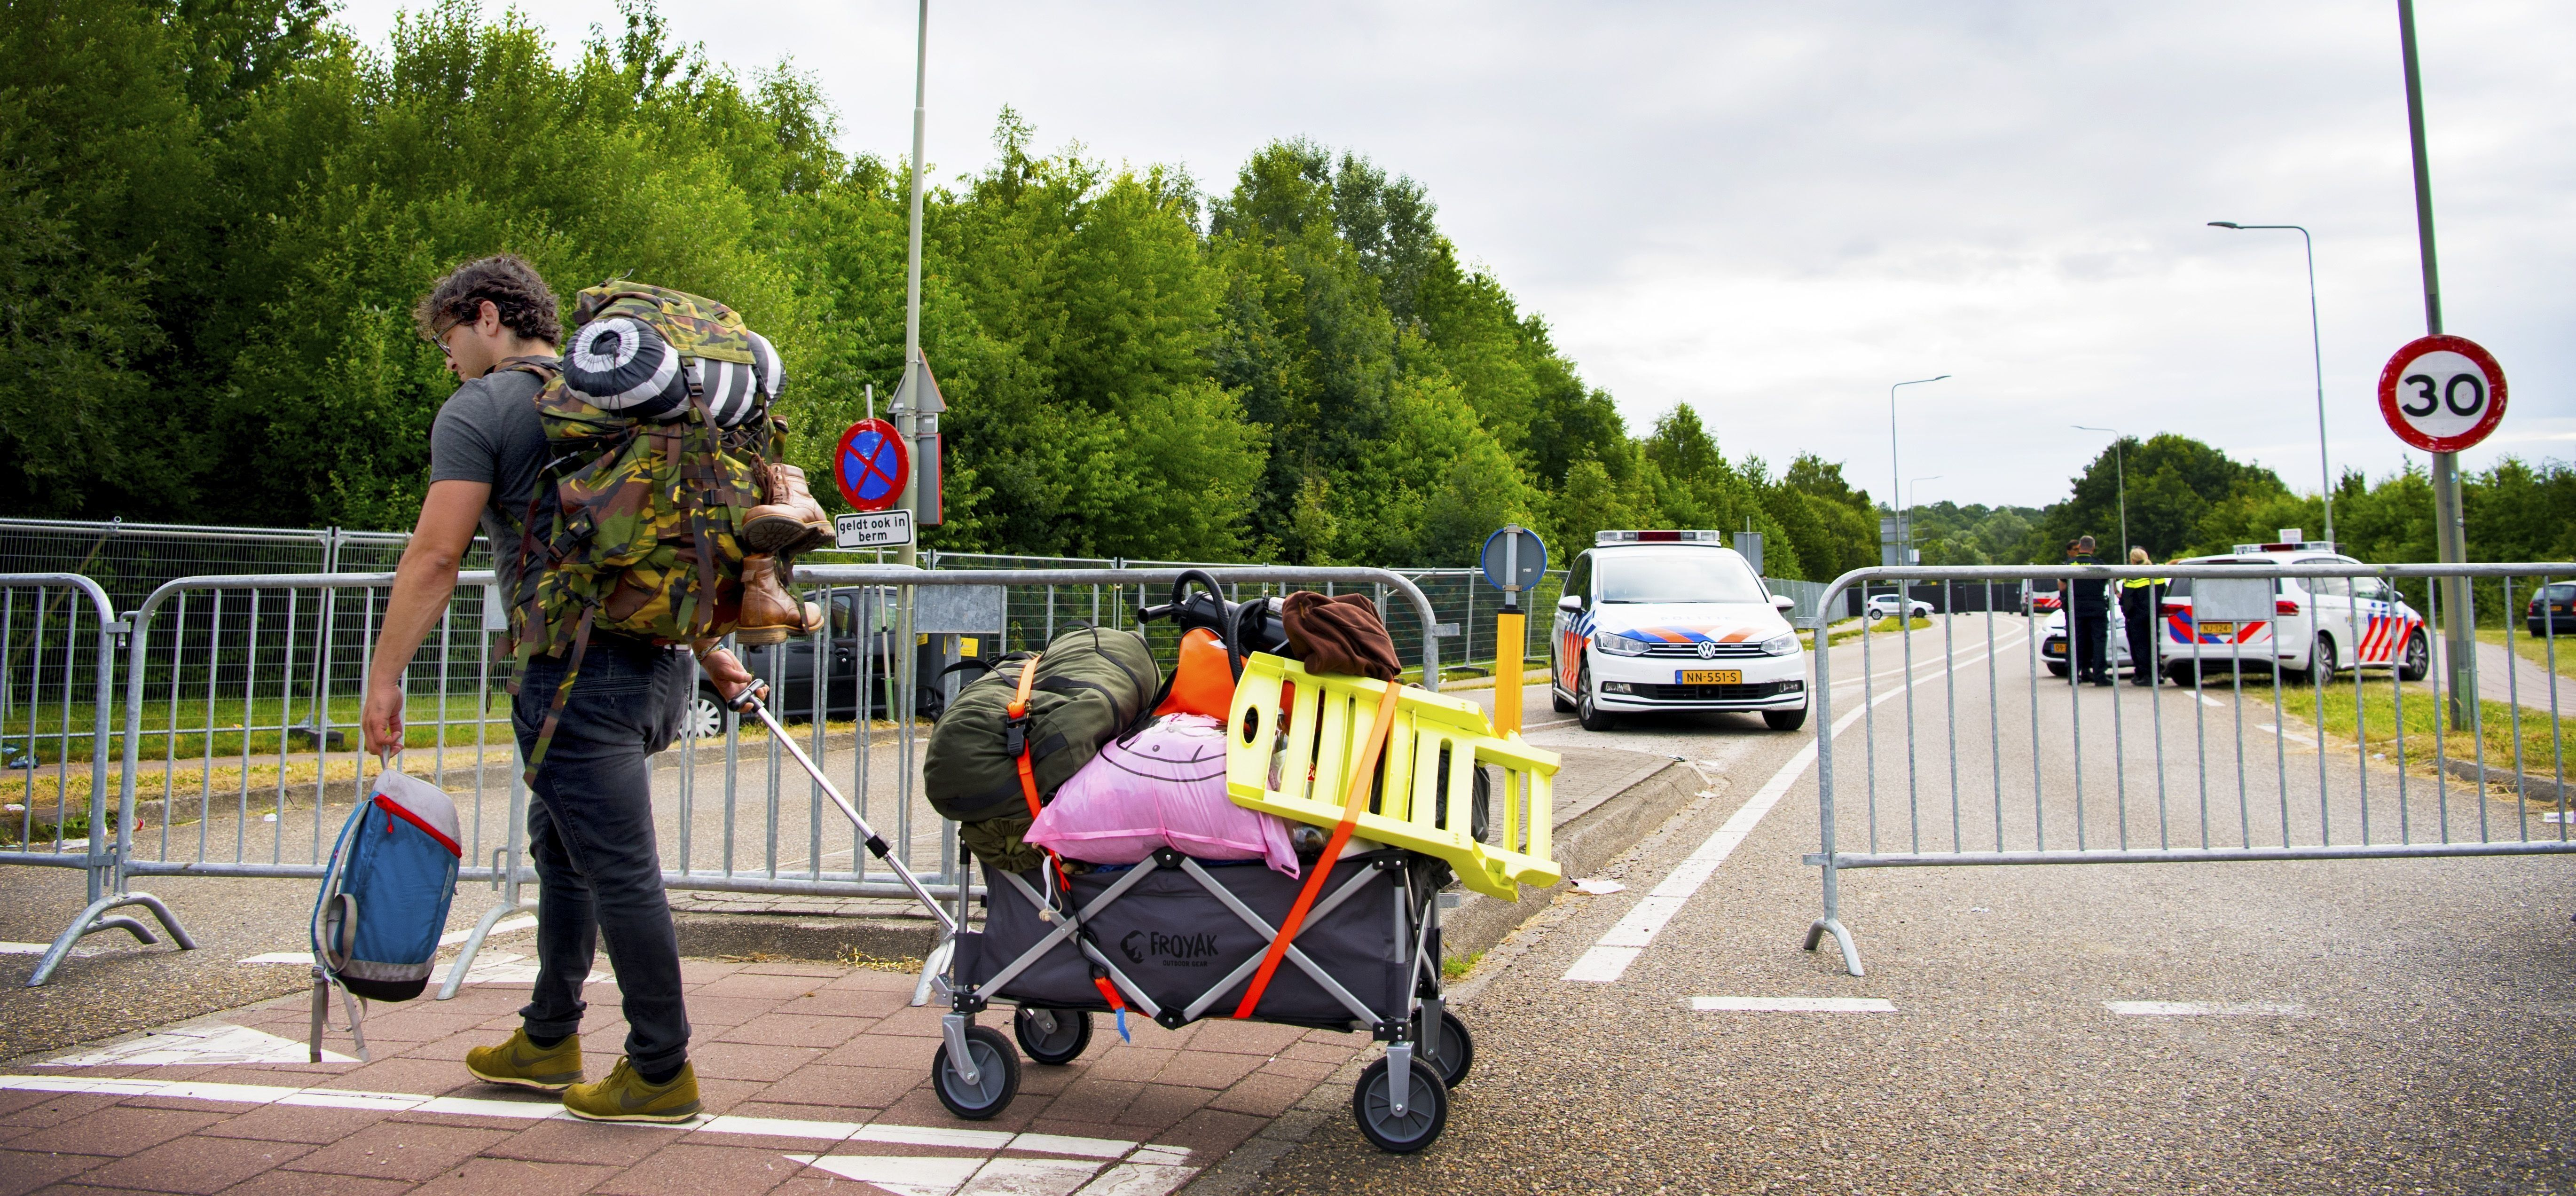 A man carries a trolley with bags past police cars near the site of the Pinkpop festival in Landgraaf, on June 18 2018, after a van slammed into pedestrians, killing one and injuring three. - The four pedestrians were hit around 4:00 am (0200 GMT) on June 18, 2018 by the van which then fled the scene, only hours after the end of the three-day Pinkpop Festival in the southern town of Landgraaf, near the German border. (Photo by Piroschka van de Wouw / ANP / AFP) / Netherlands OUT        (Photo credit should read PIROSCHKA VAN DE WOUW/AFP/Getty Images)